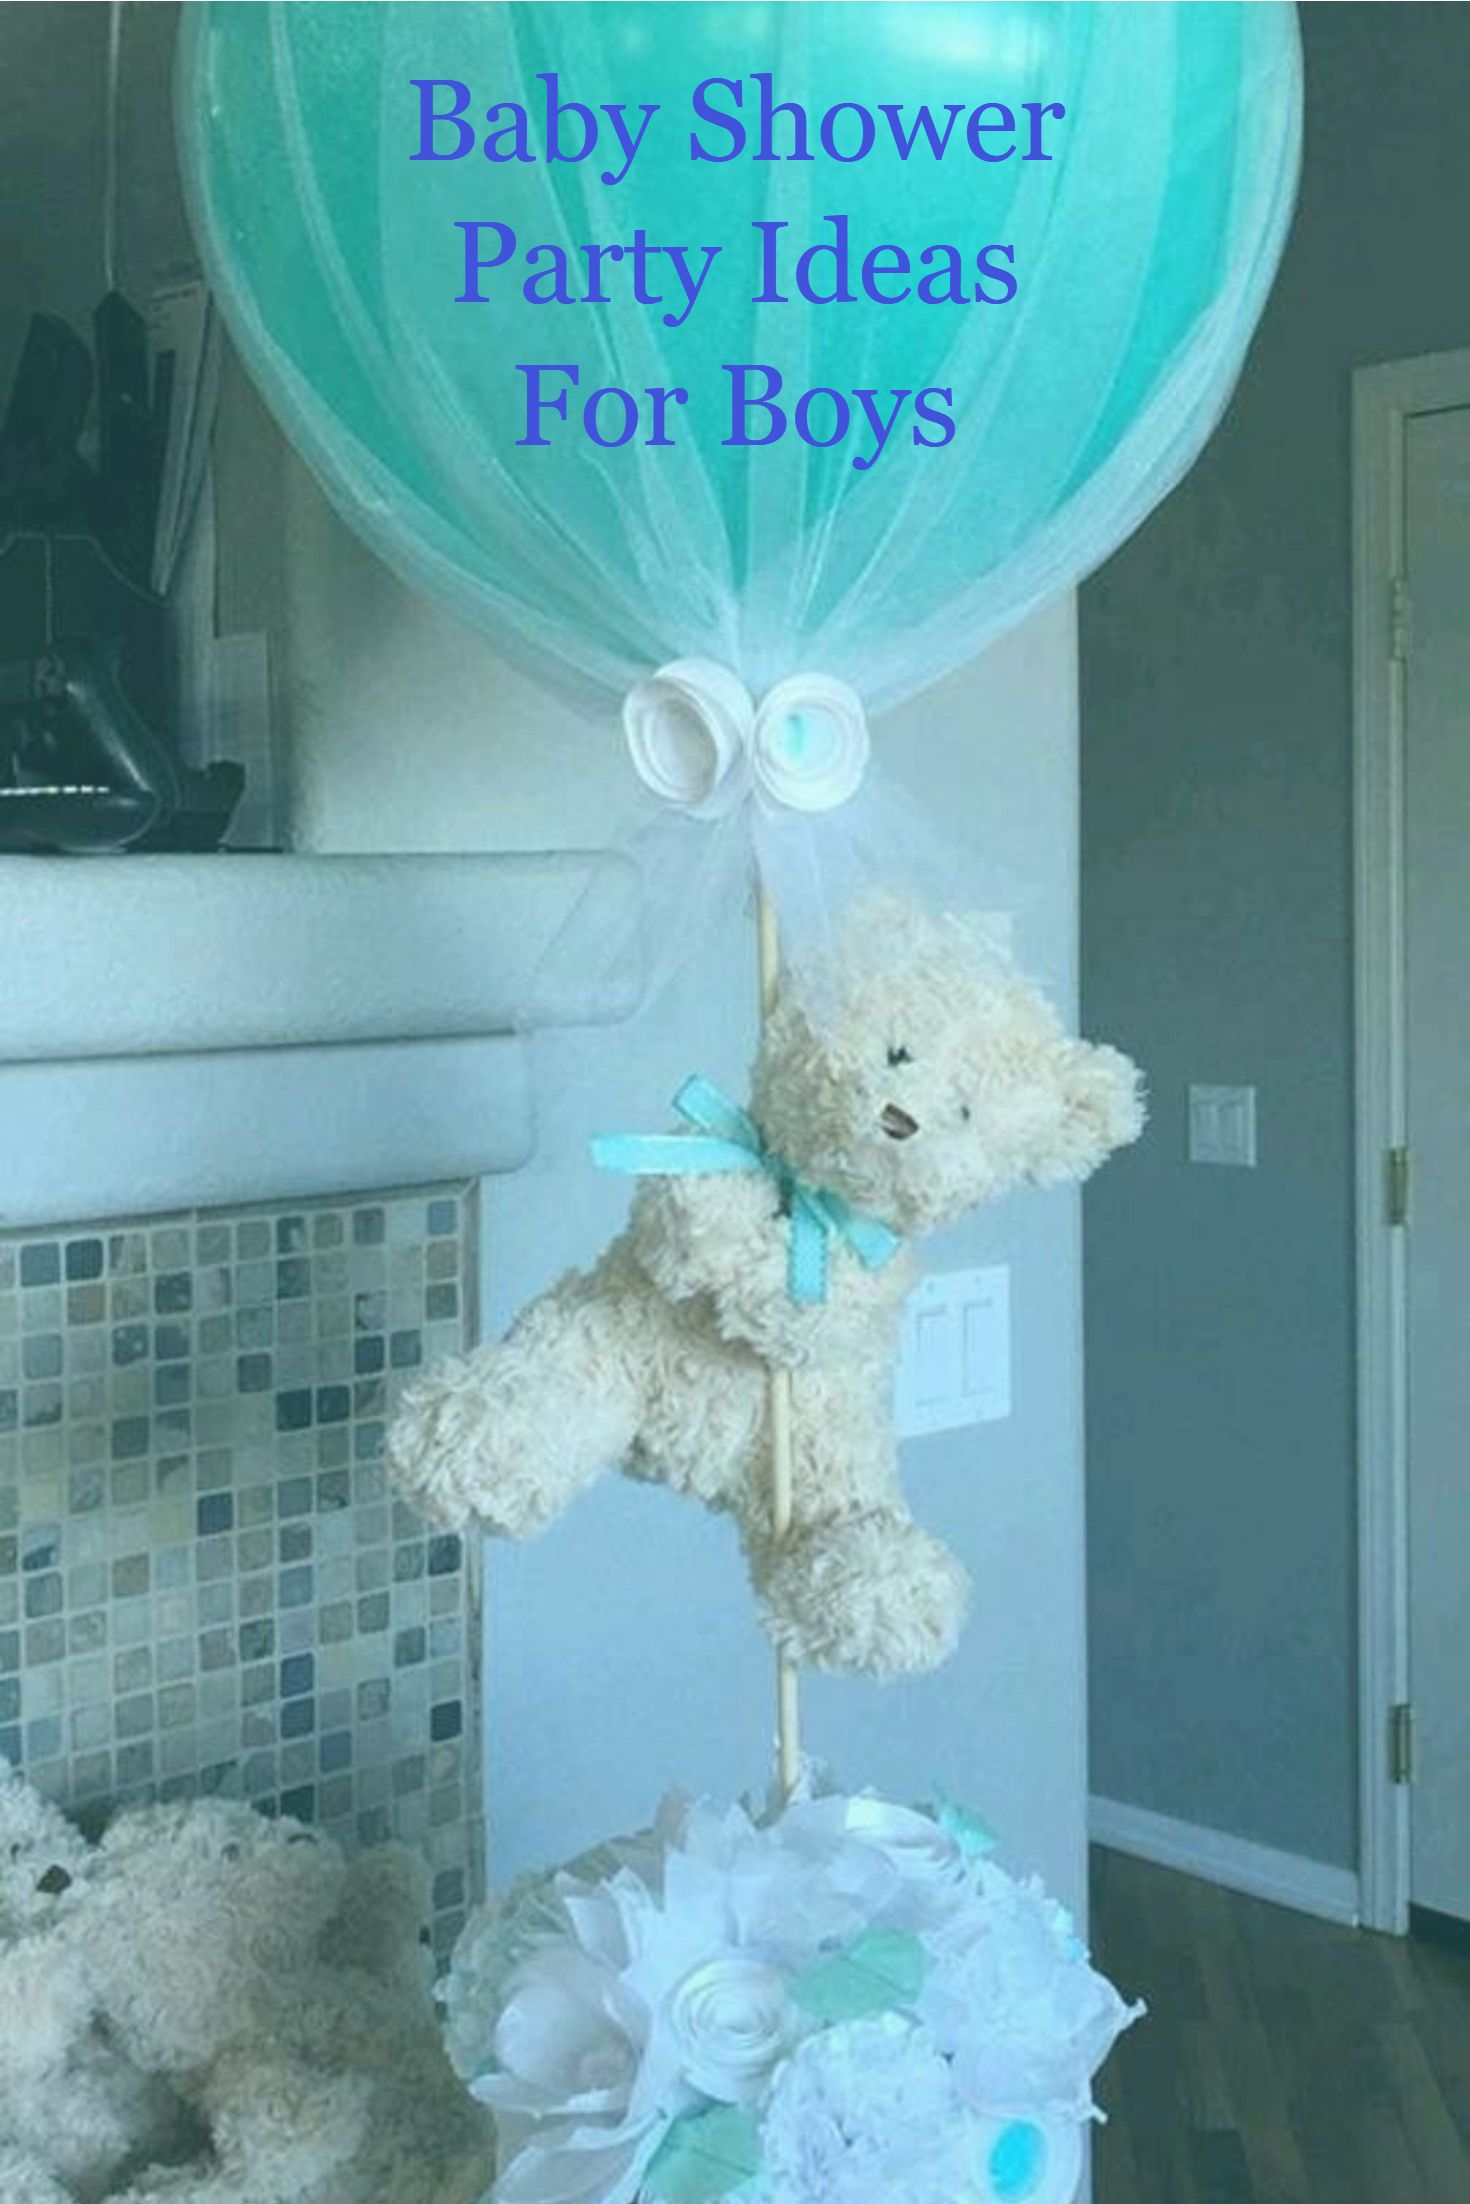 Diy Baby Shower Party Ideas For Boys (June 2018) Check